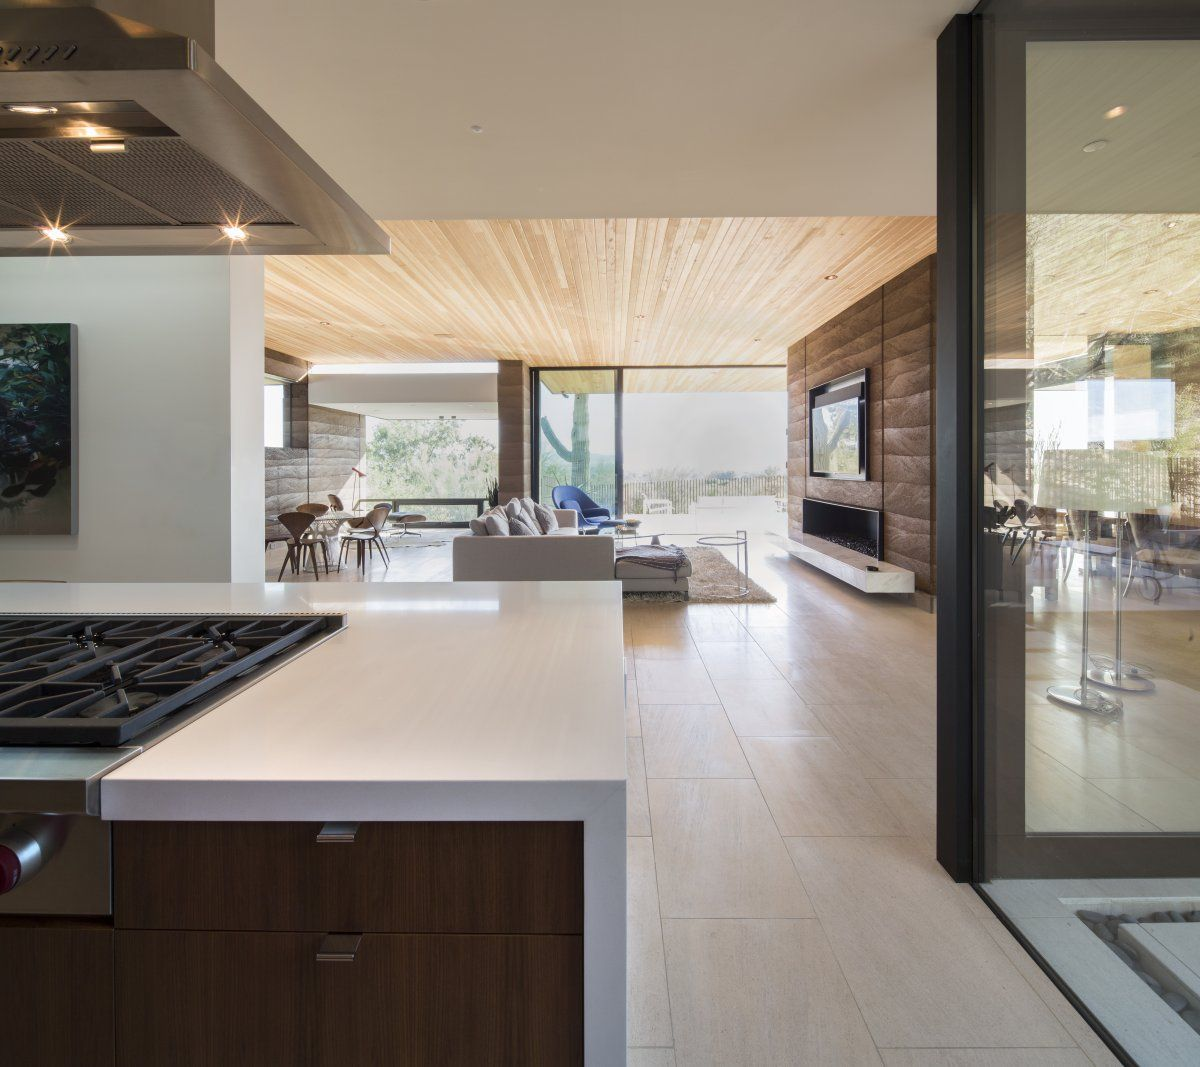 re_110813_26 | Ideas for the House | Pinterest